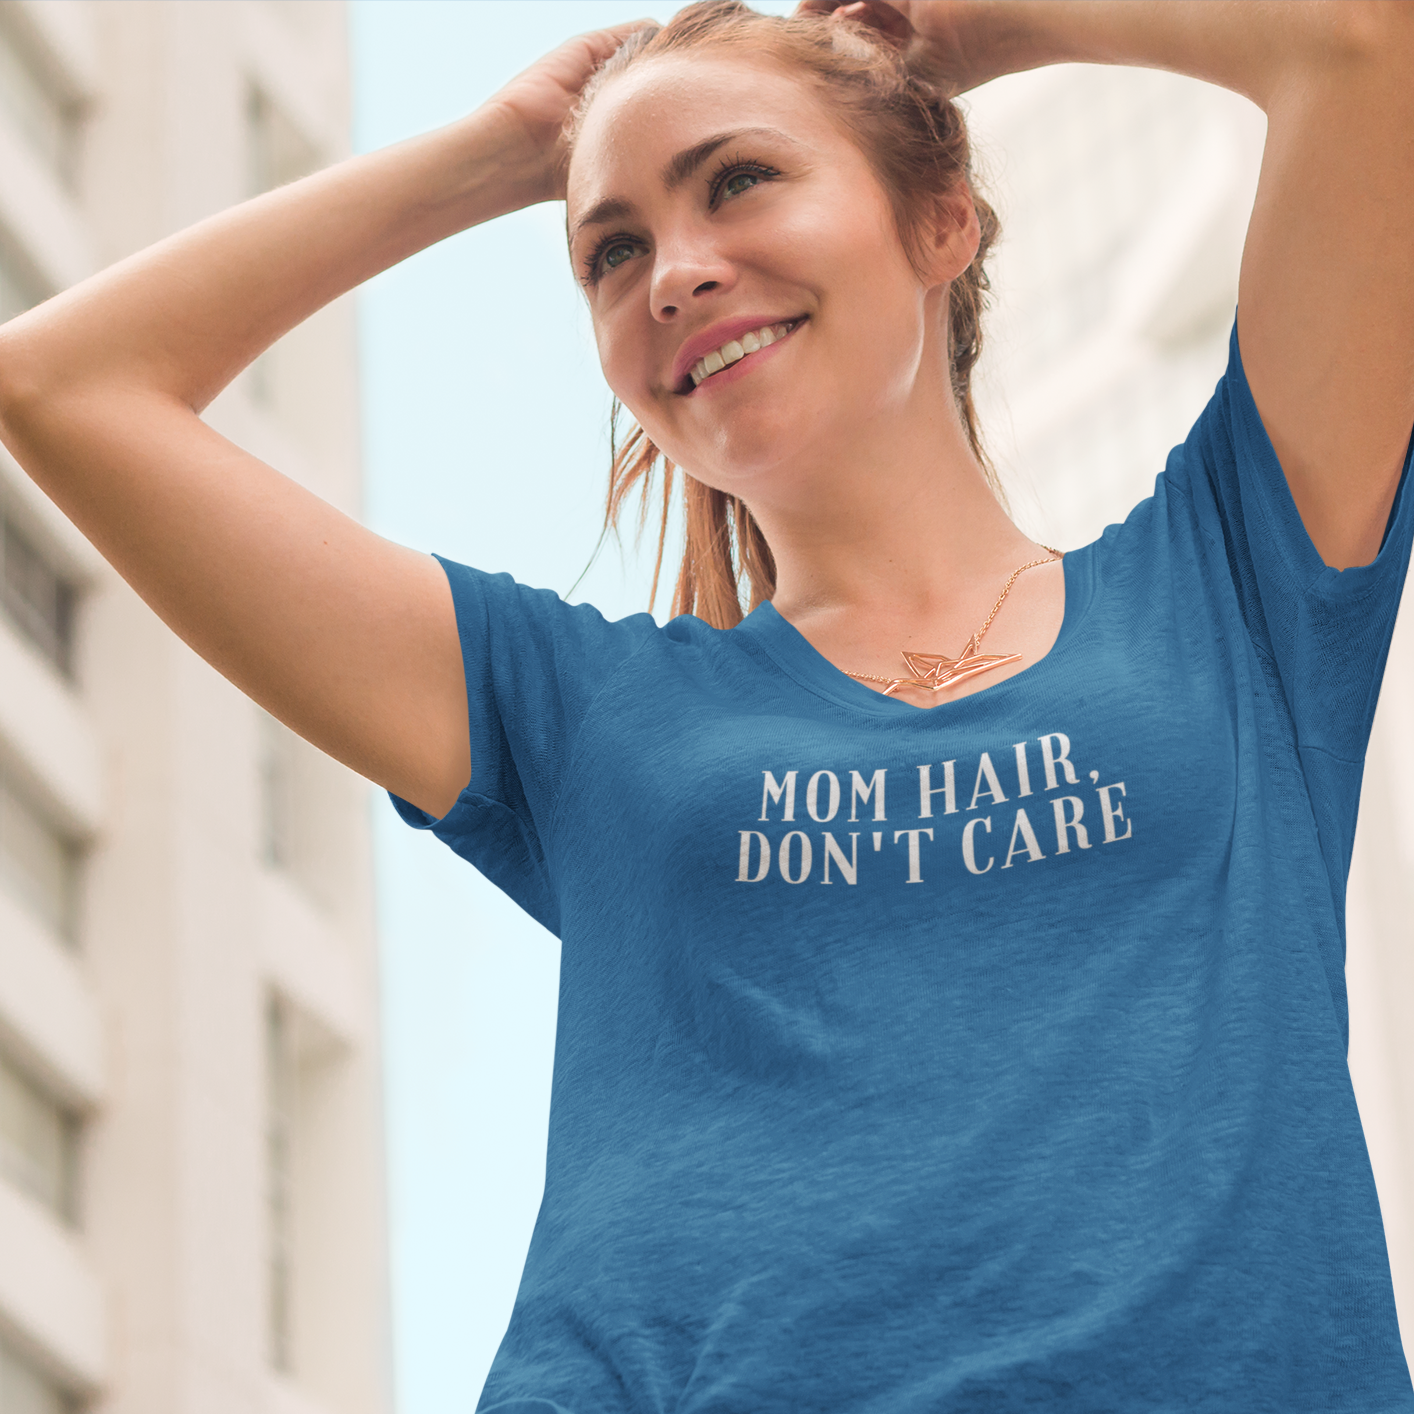 Smiling woman with city in the background fixing her ponytail wearing a Mom Hair, Don't Care shirt